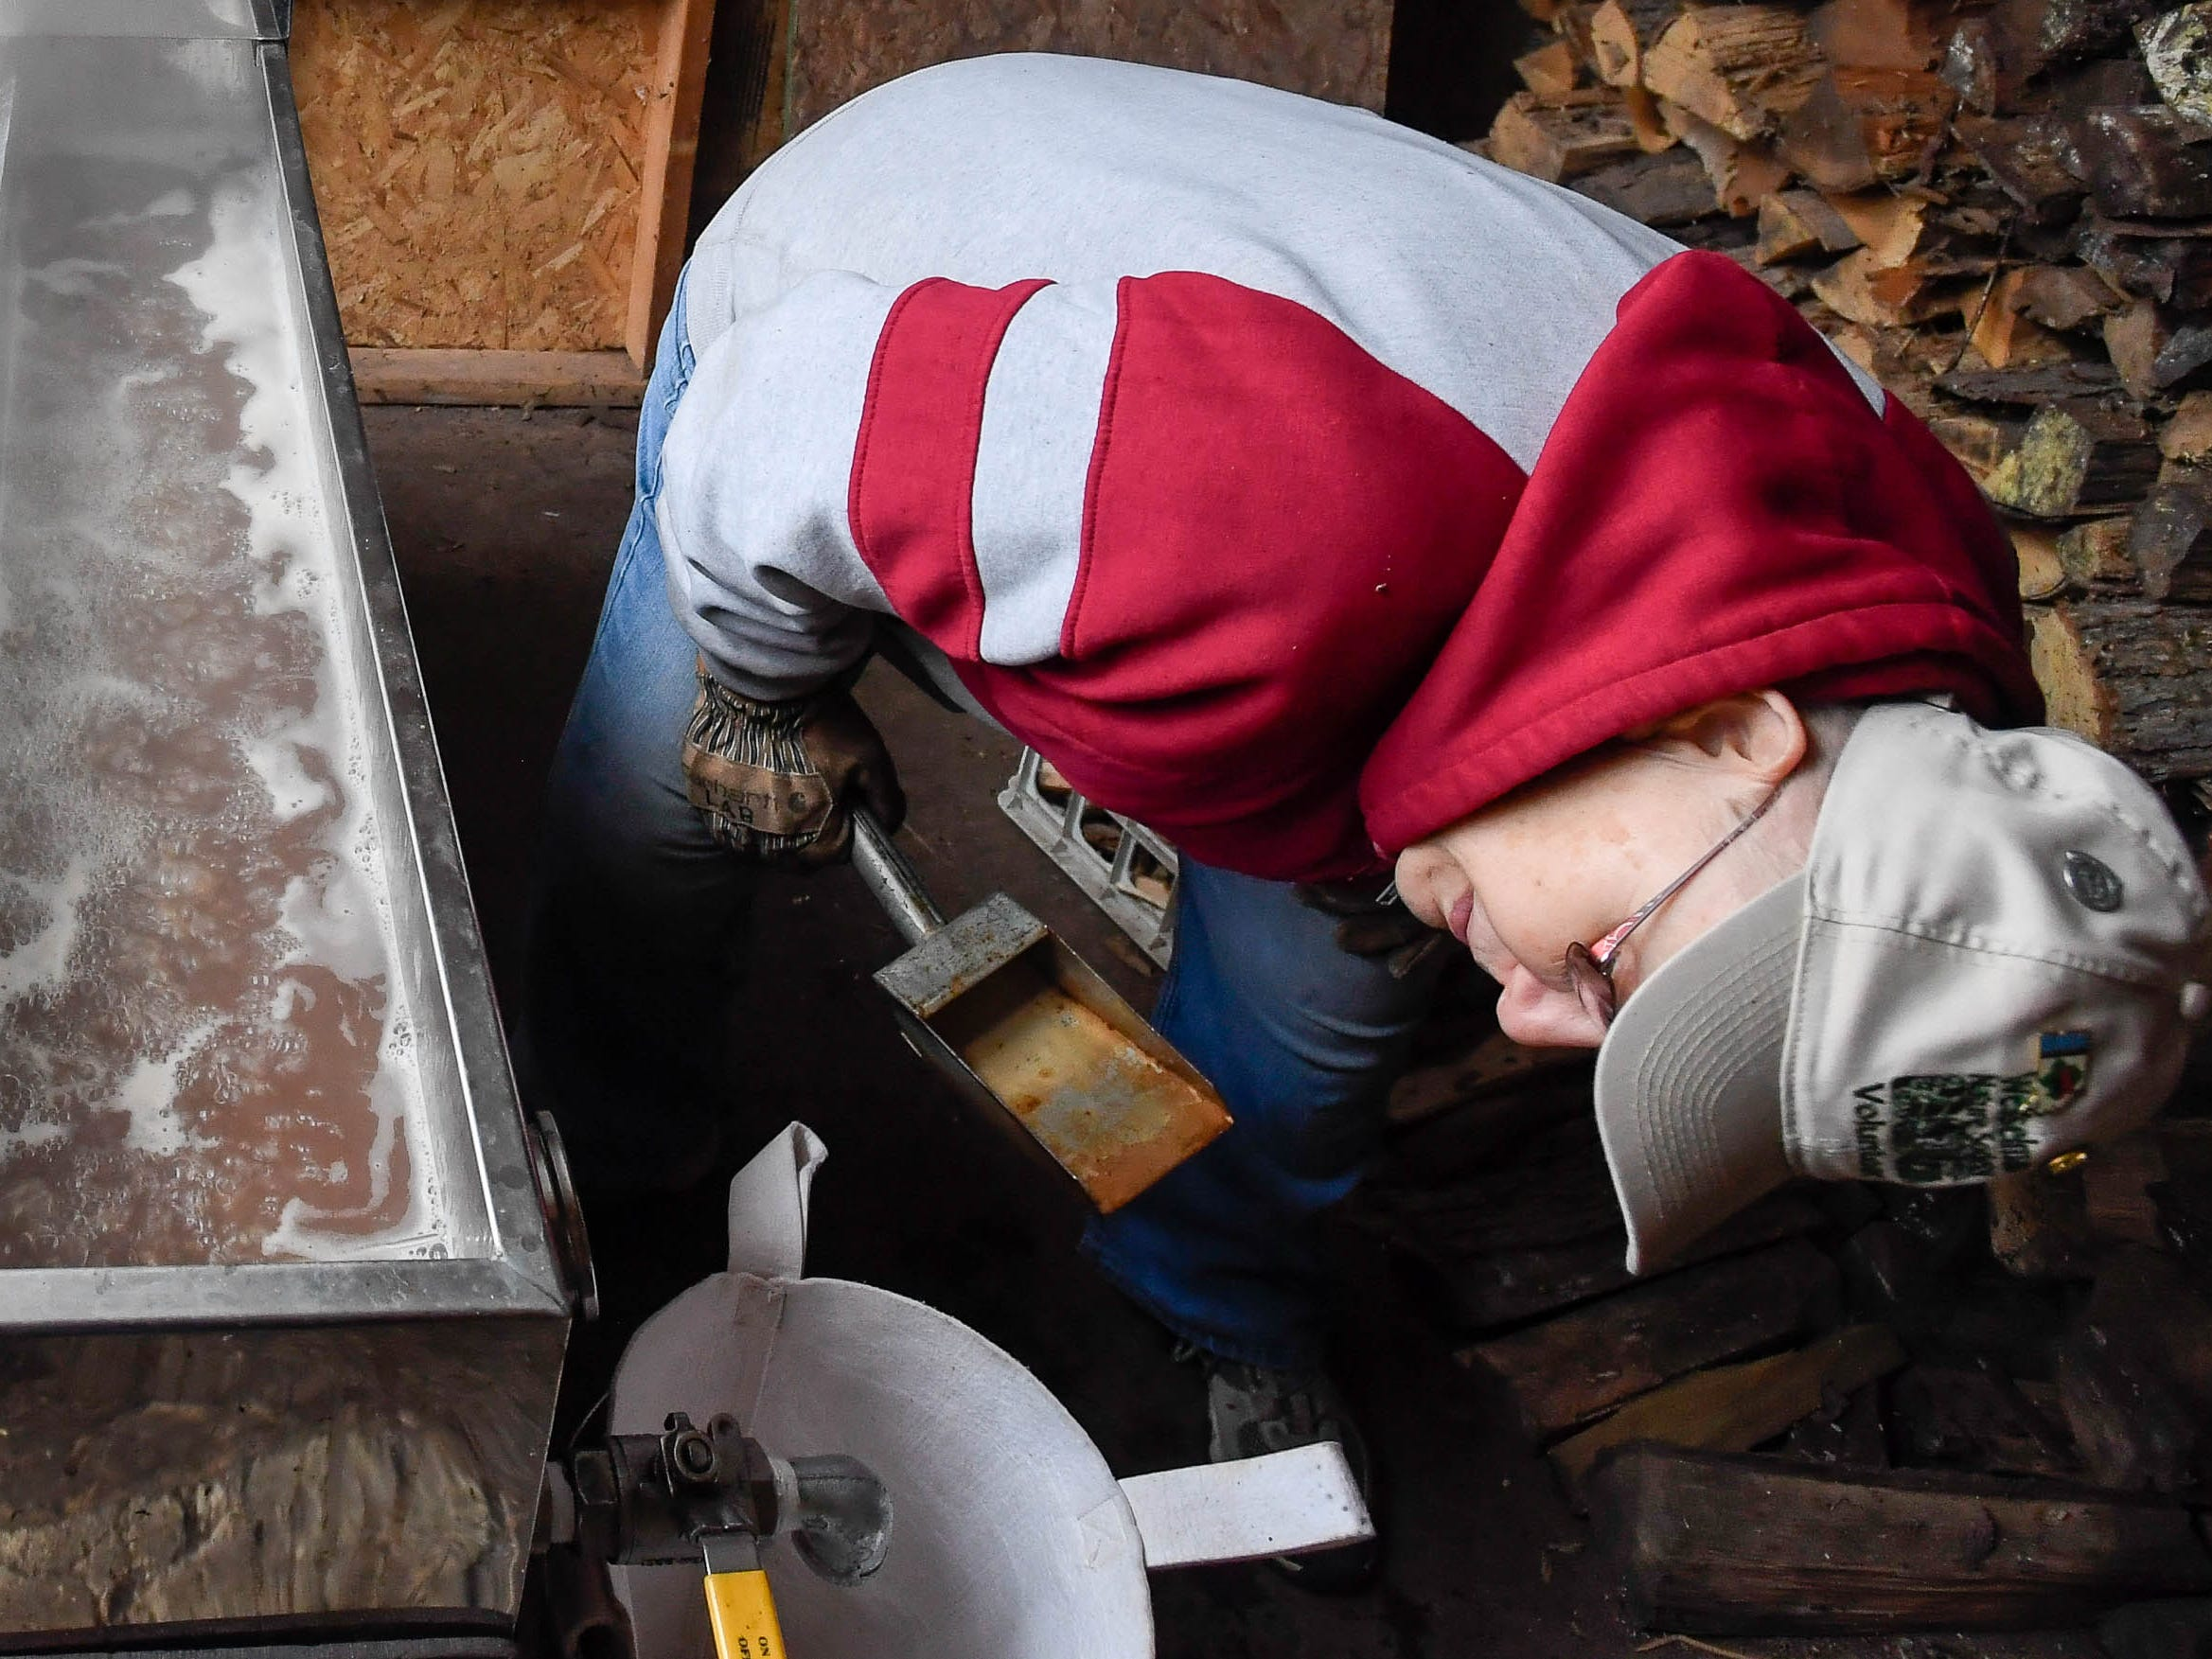 Volunteer LeeAnne Bruner reads the thermometer on the evaporator as she cooks maple syrup, as maple syrup production is under way at the Wesselman Woods Nature Preserve for the park's Annual Sugarbush Festival, Tuesday. Bruner has been cooking maple syrup at the park for over 30 years, February 5, 2019.